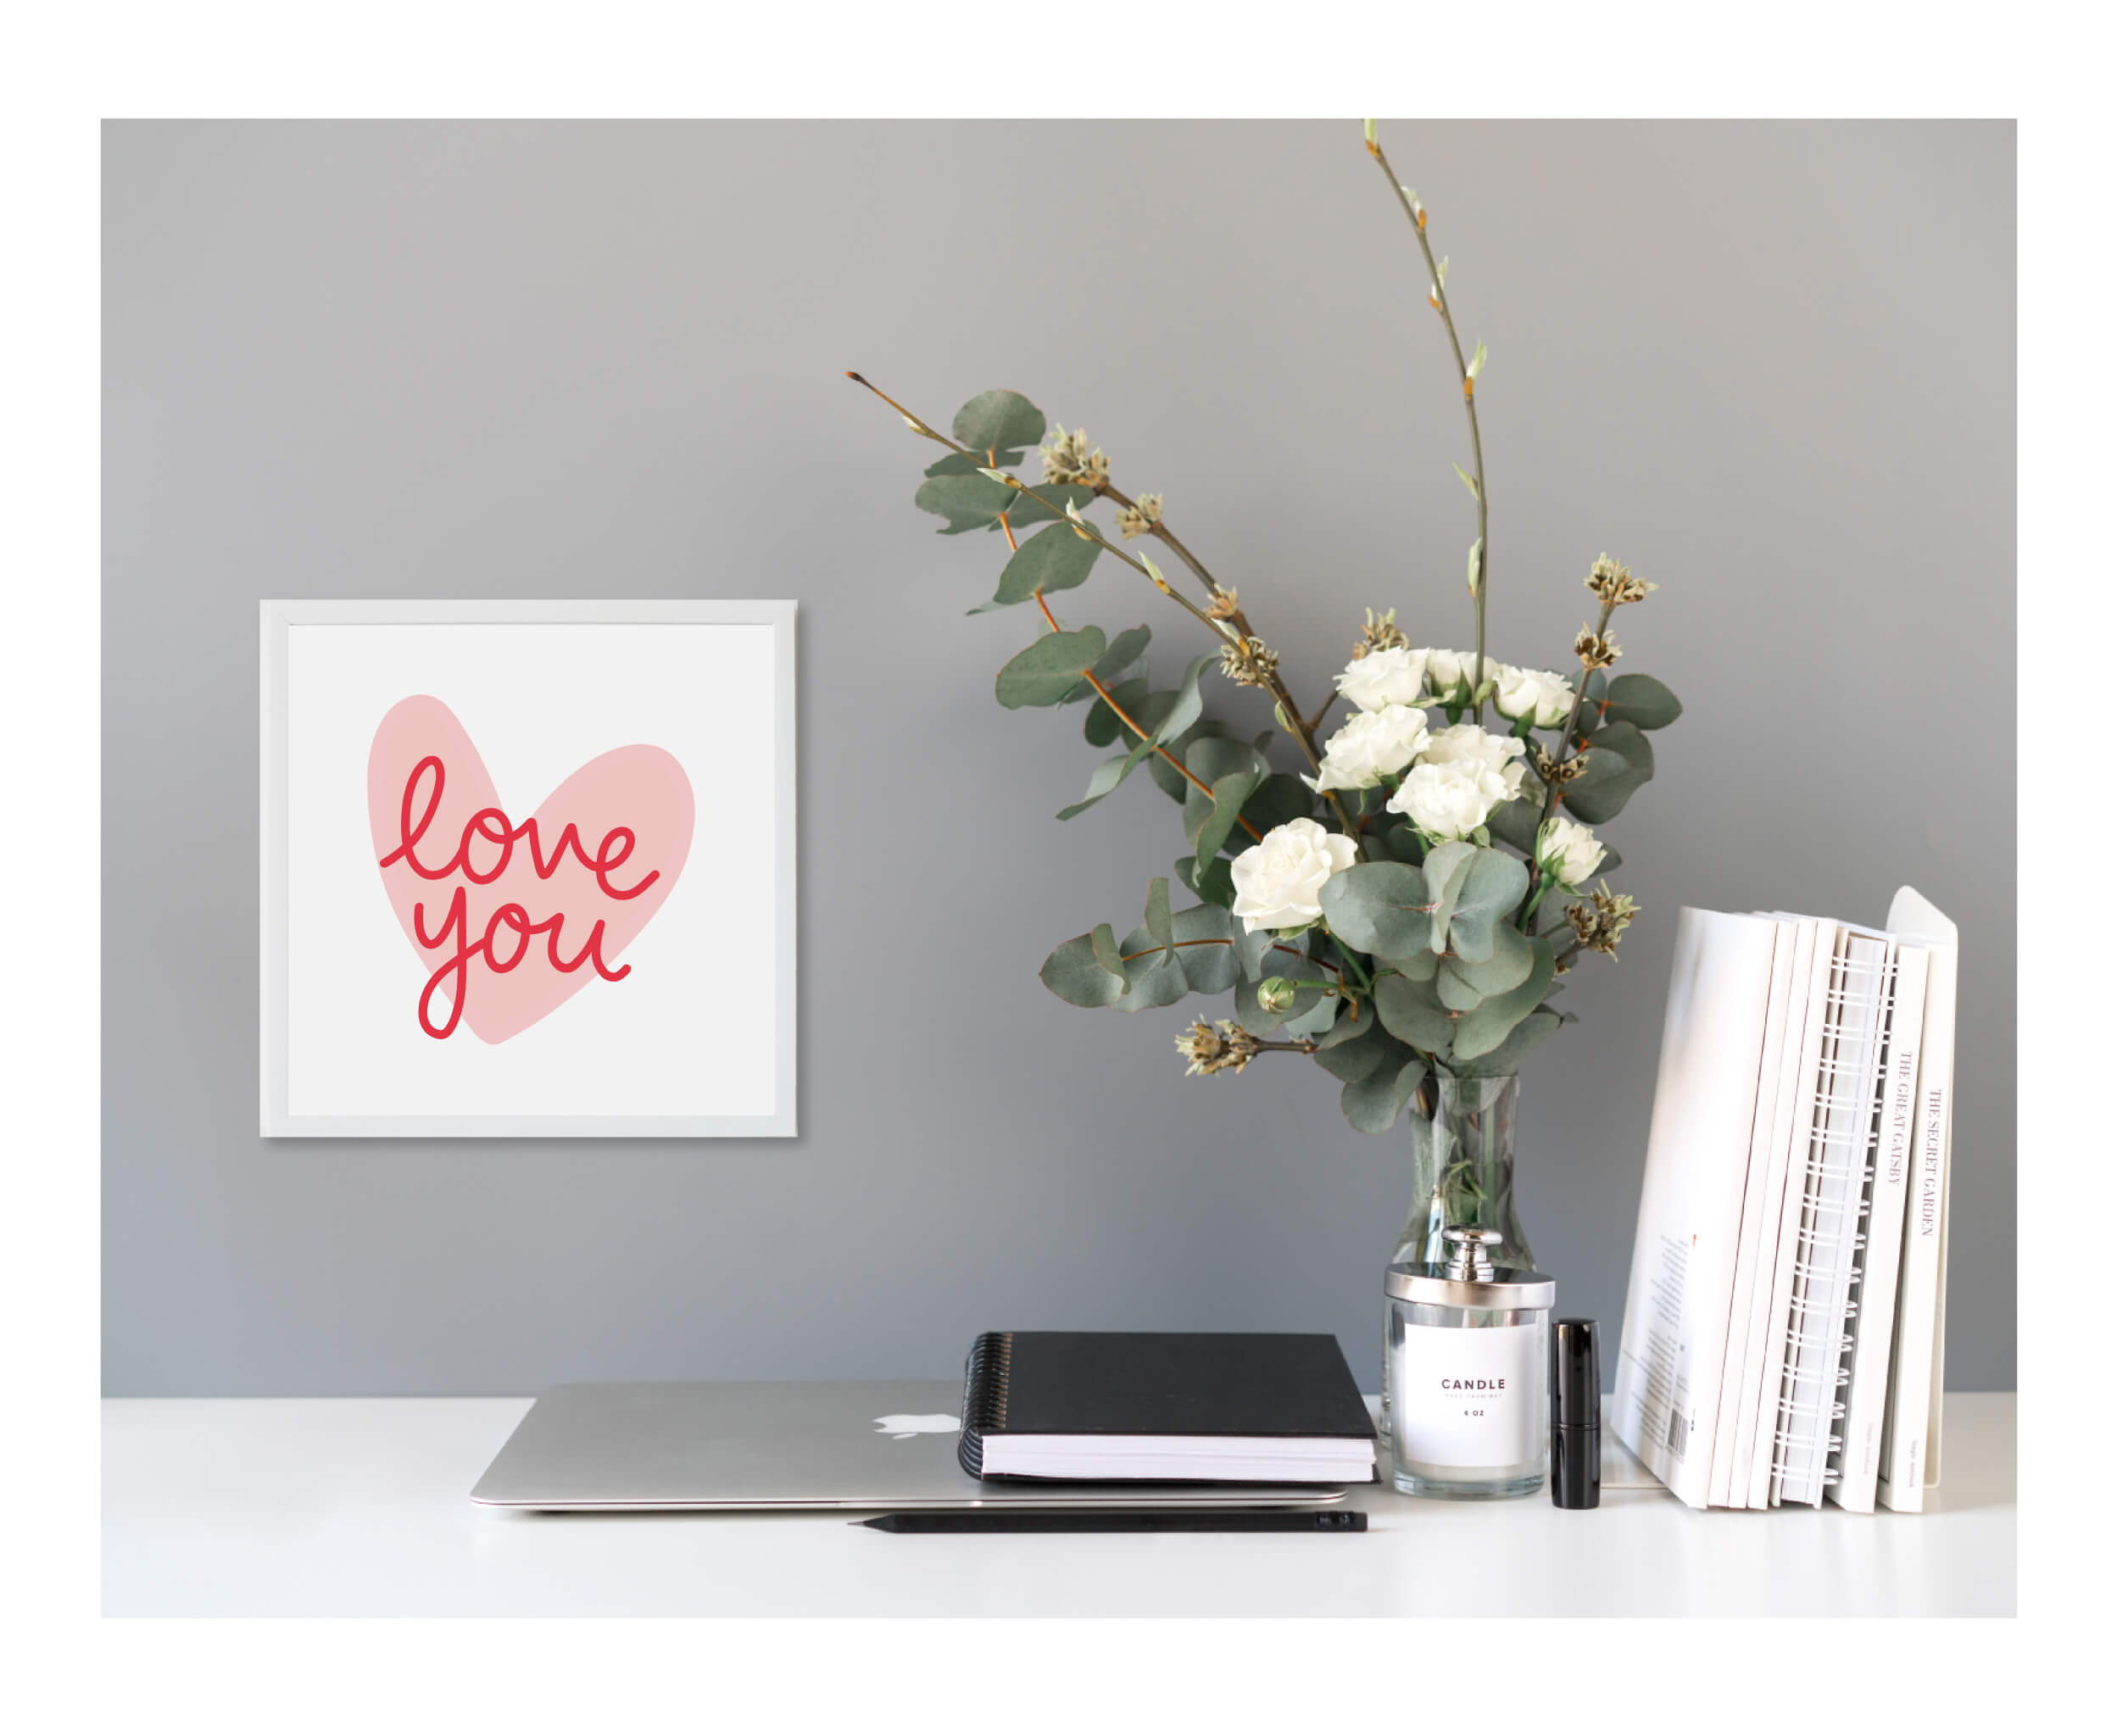 Valentine's Decor hanging in a room